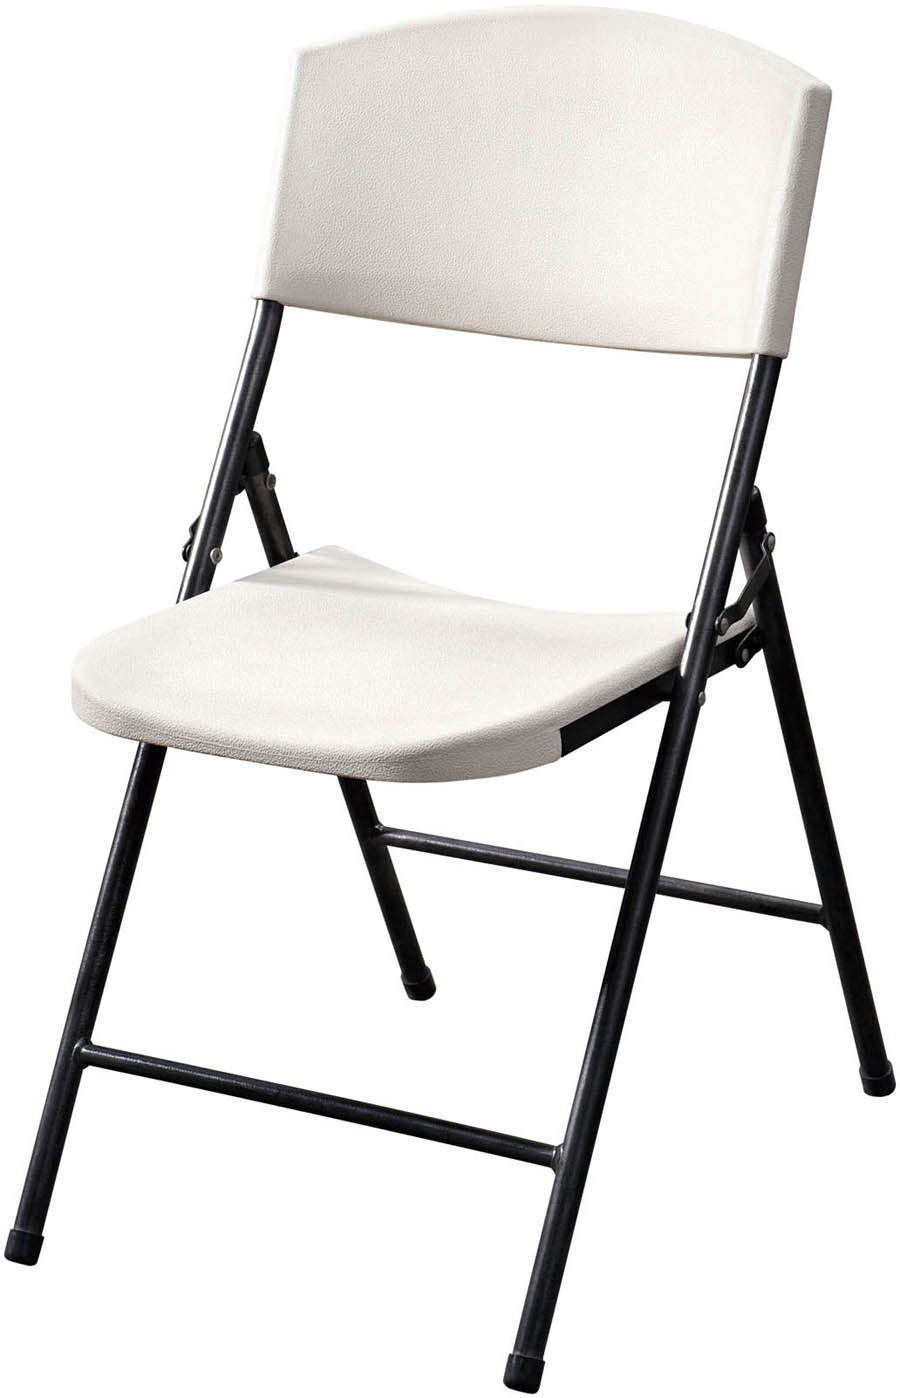 China Yc 032 Plastic Blow Mold Folding Chair Outdoor